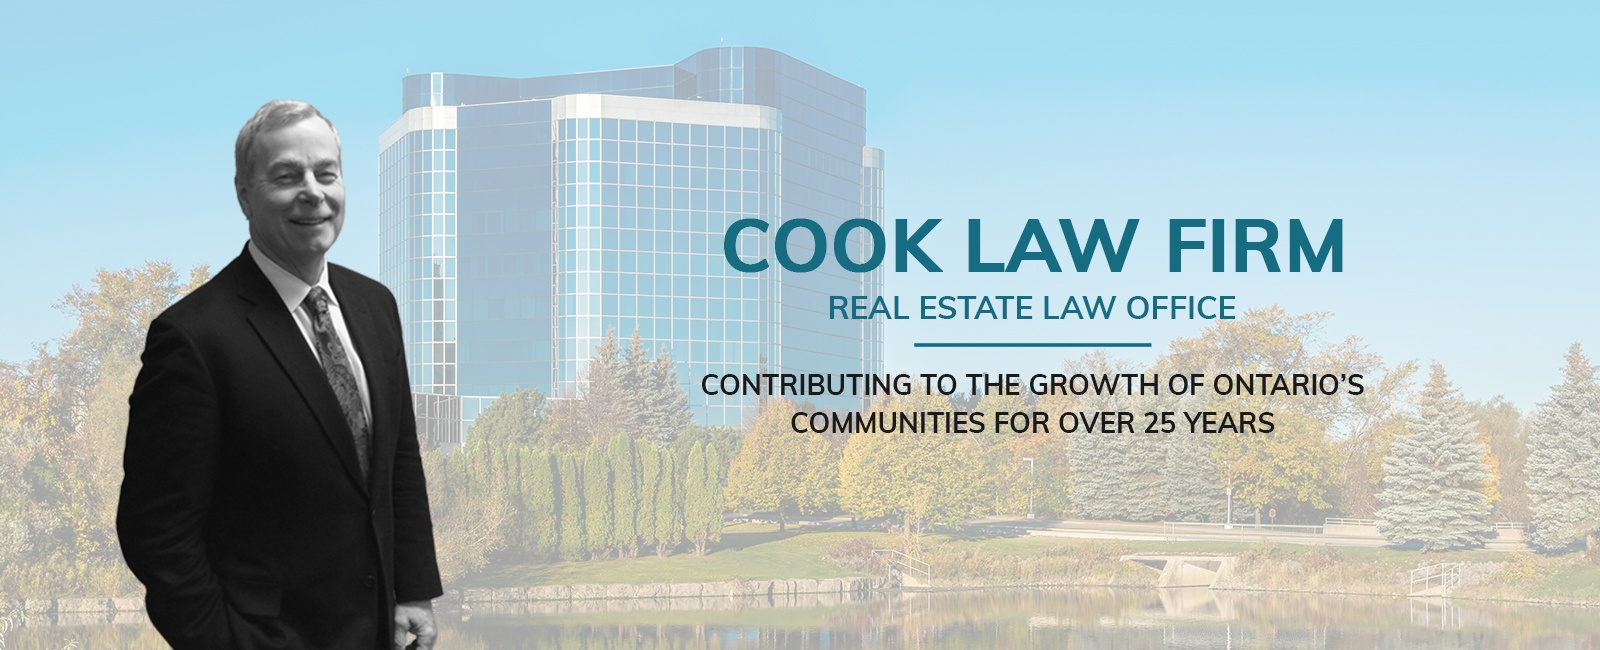 Real Estate Law Firm in Markham